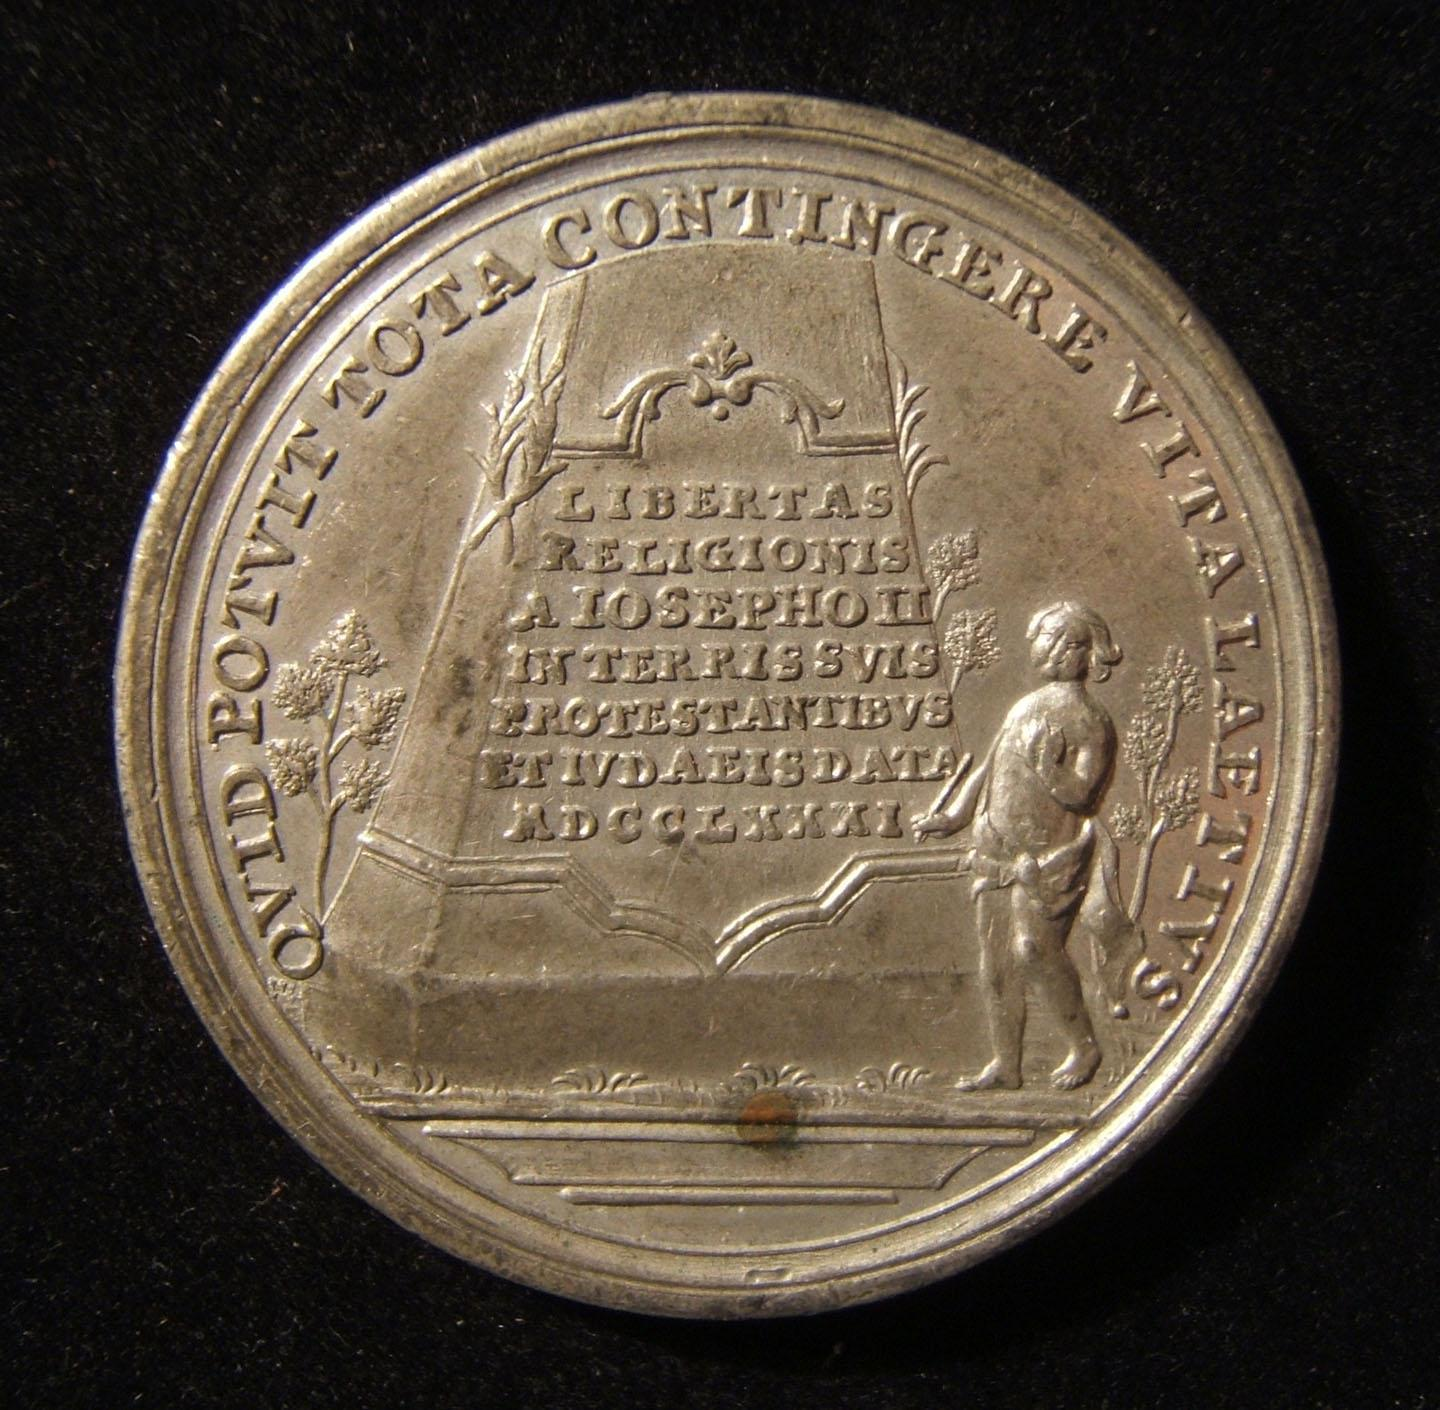 Germany: Edict of Toleration in Habsburg Empire, 1781, by Johann Leonhard Oexlein; pewter strike; weight: 29.25; size: 45mm. Obv.: right facing Emperor; Latin leg.